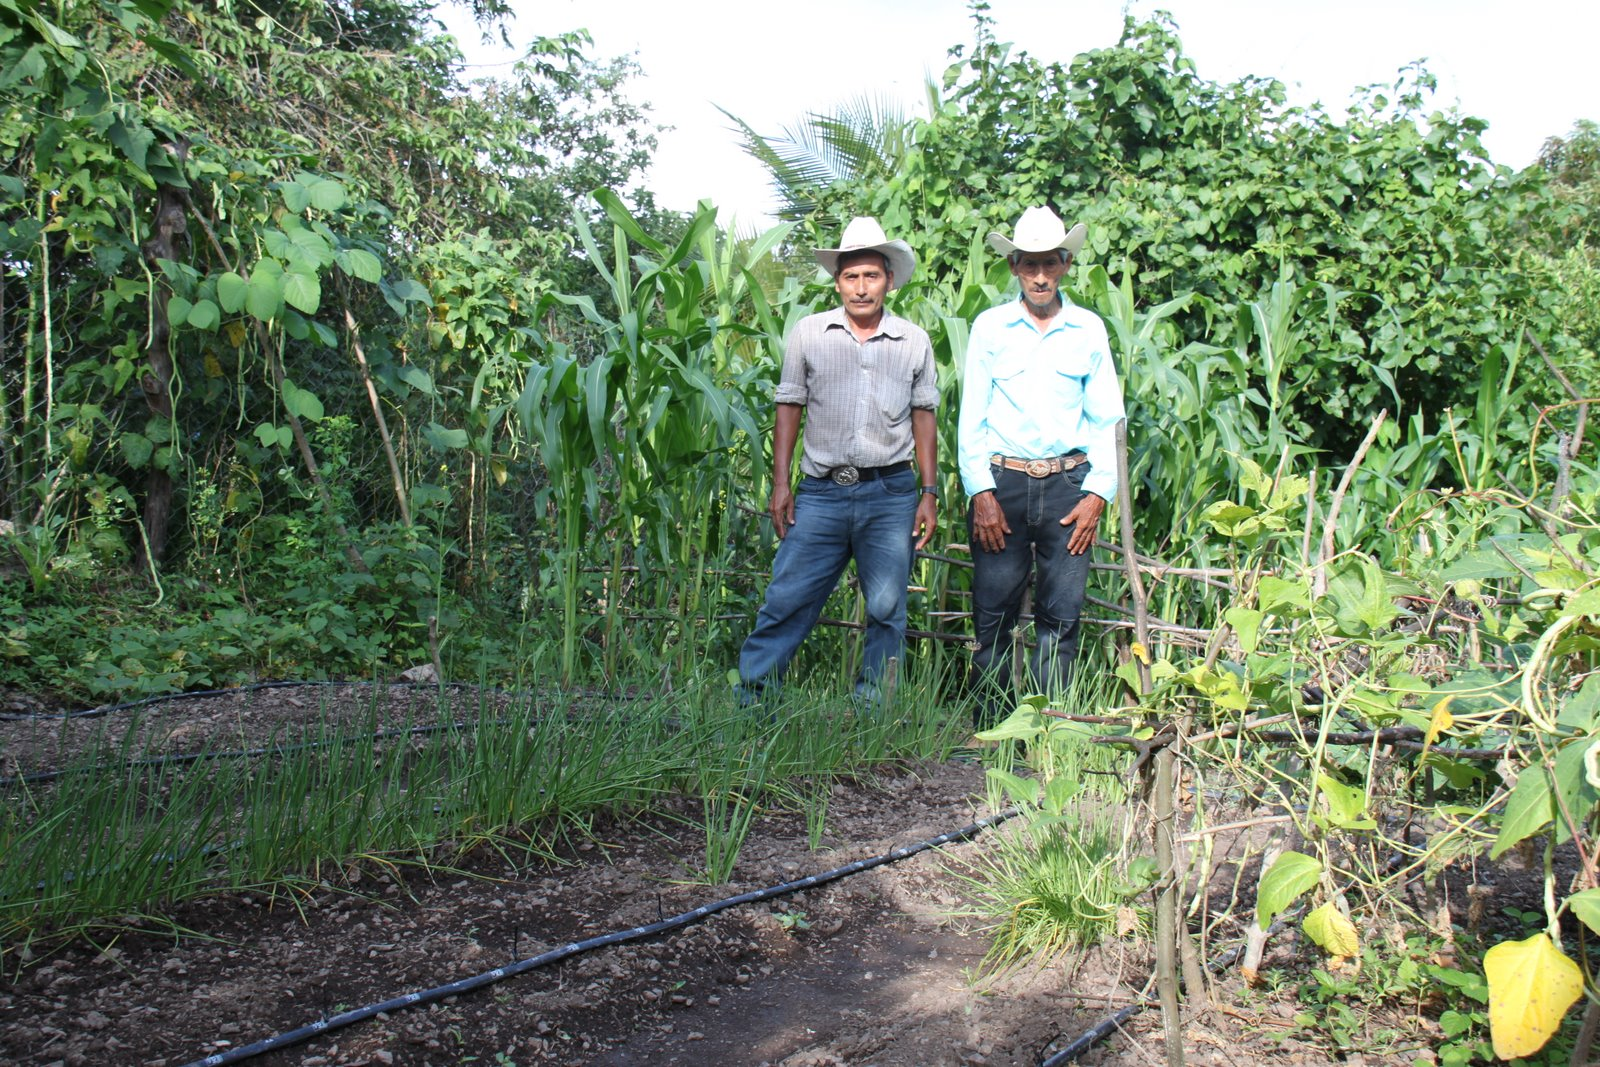 Please support our team in Nicaragua!